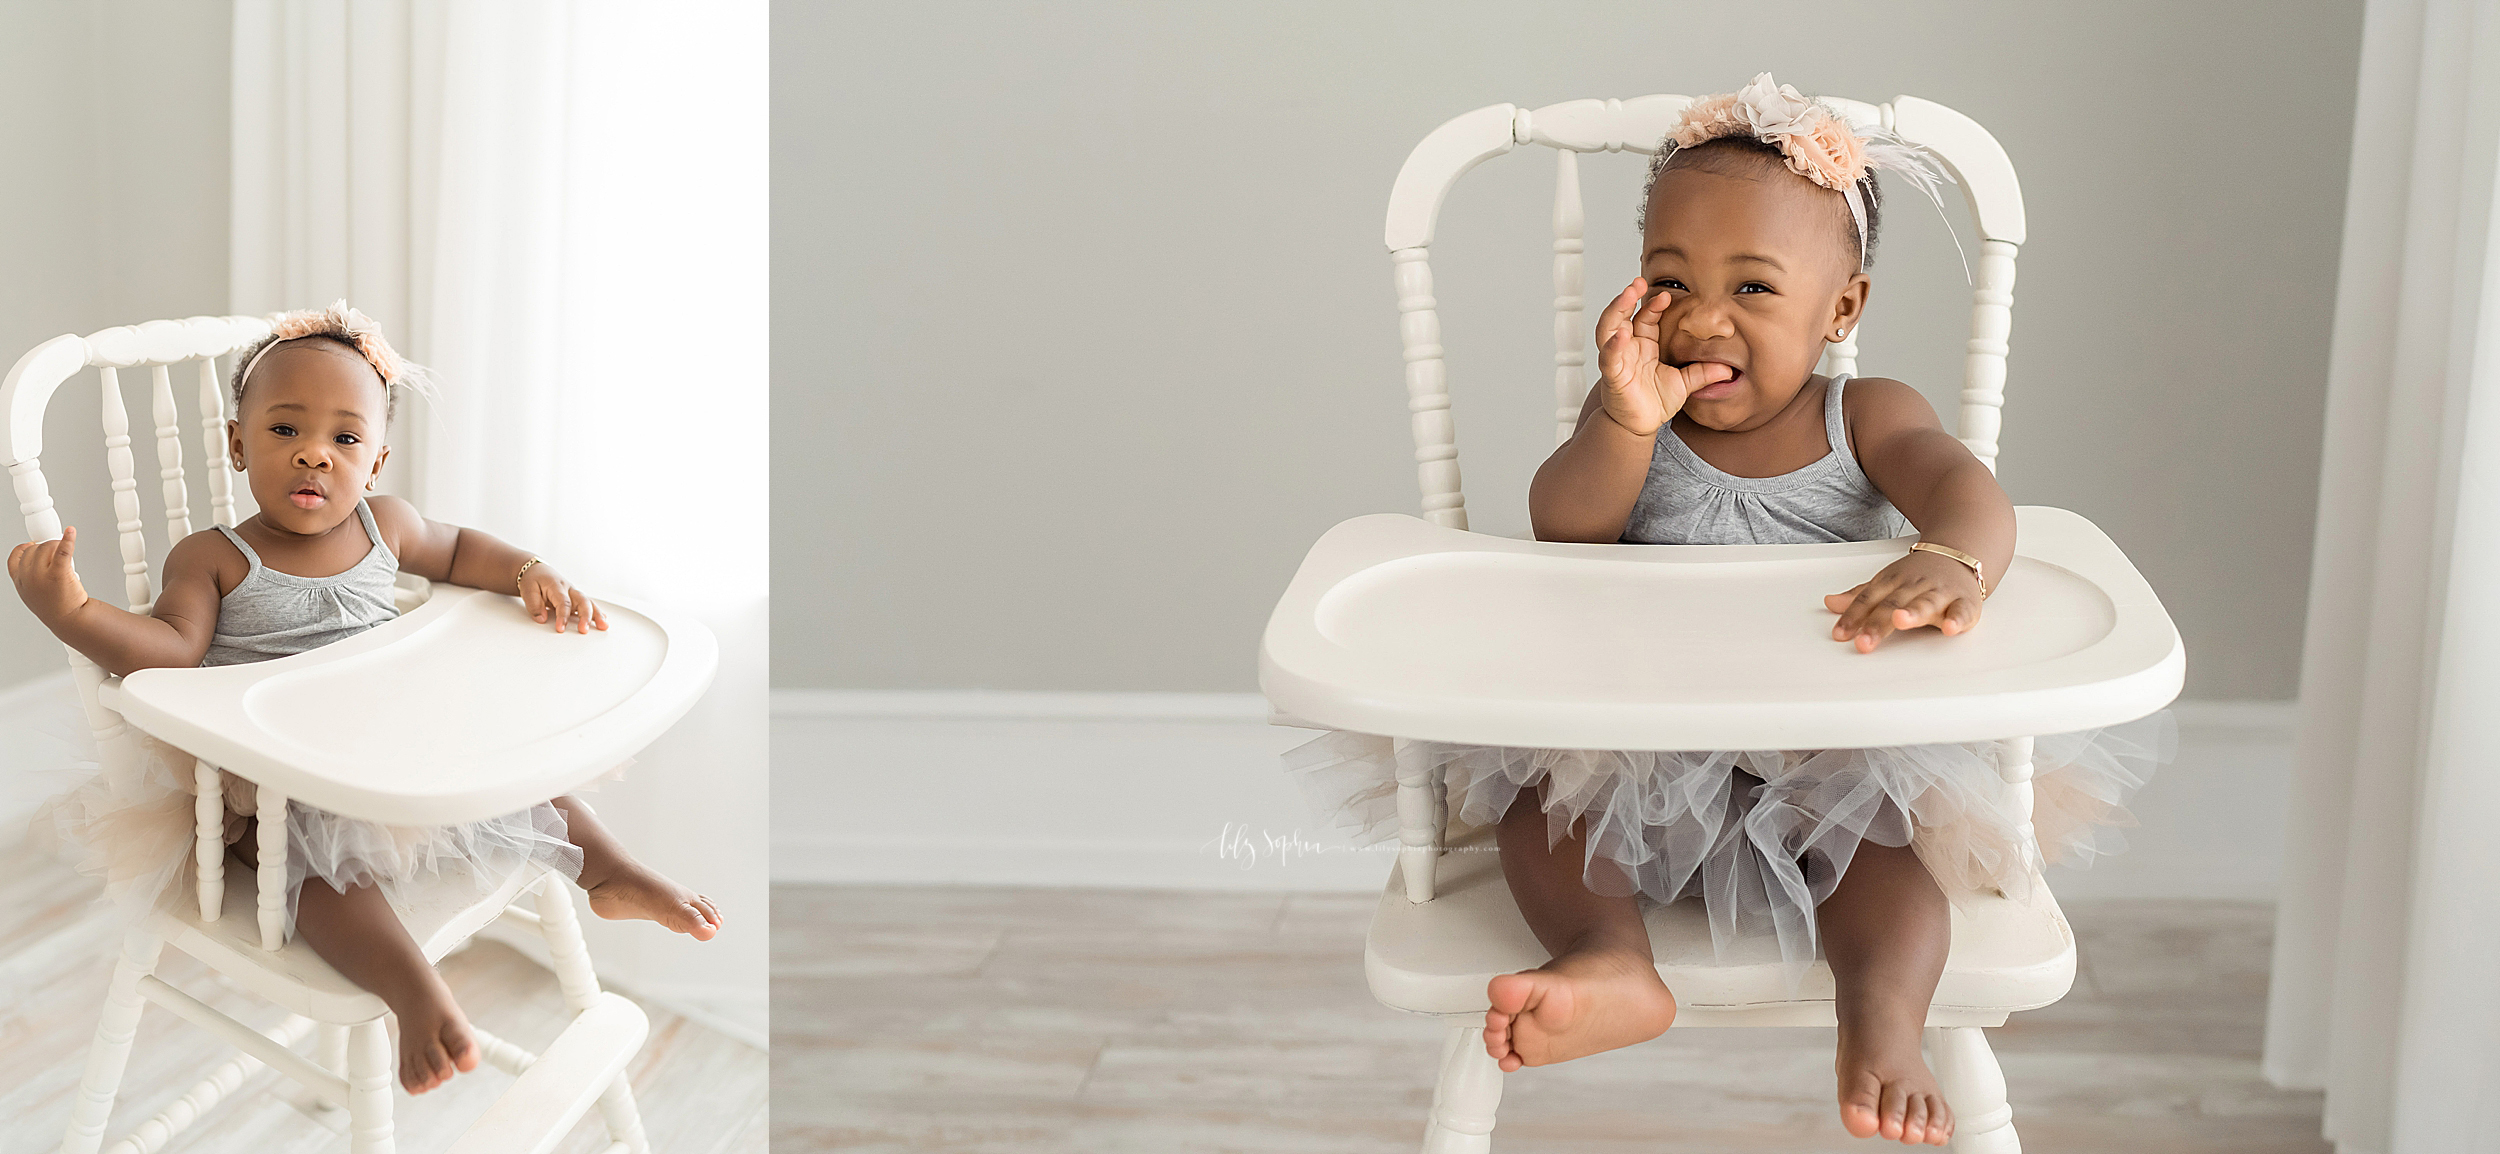 atlanta-decatur-candler-park-sandy-springs-buckhead-virginia-highlands-west-end-decatur-lily-sophia-photography-studio-one-year-old-baby-girl-first-birthday-cake-smash-toddler-big-brother-family-parents-session_1877.jpg